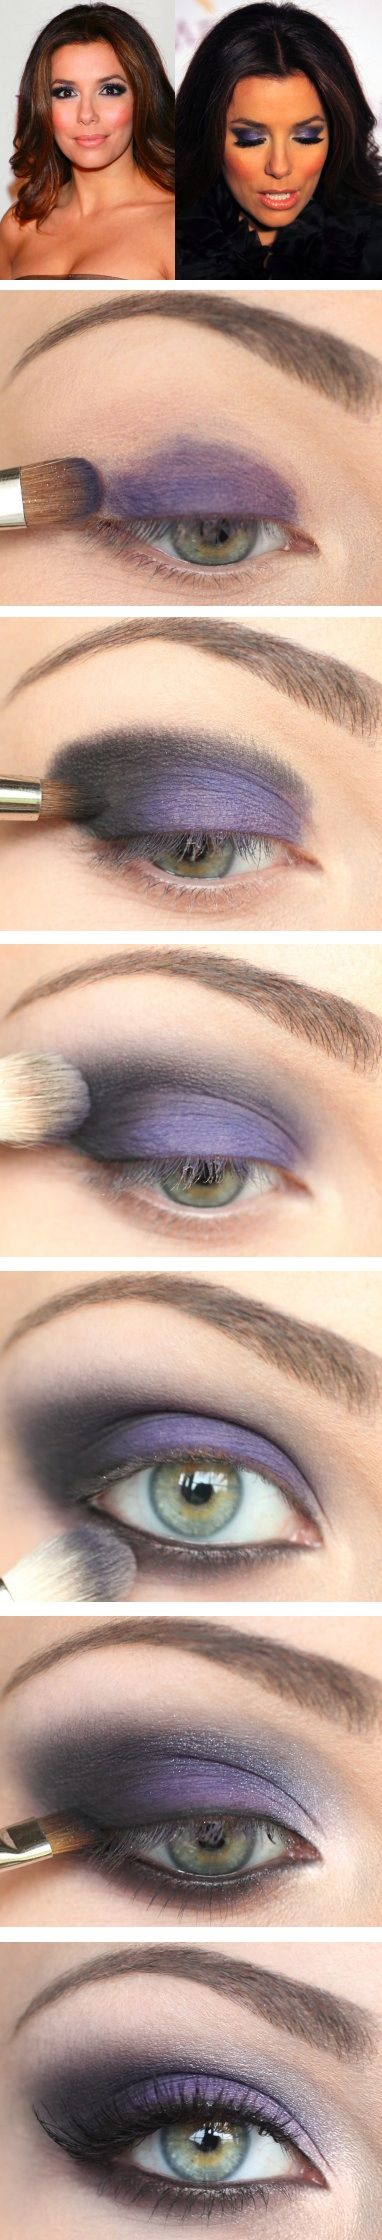 Eva Longoria inspired look.... violets purples smokey